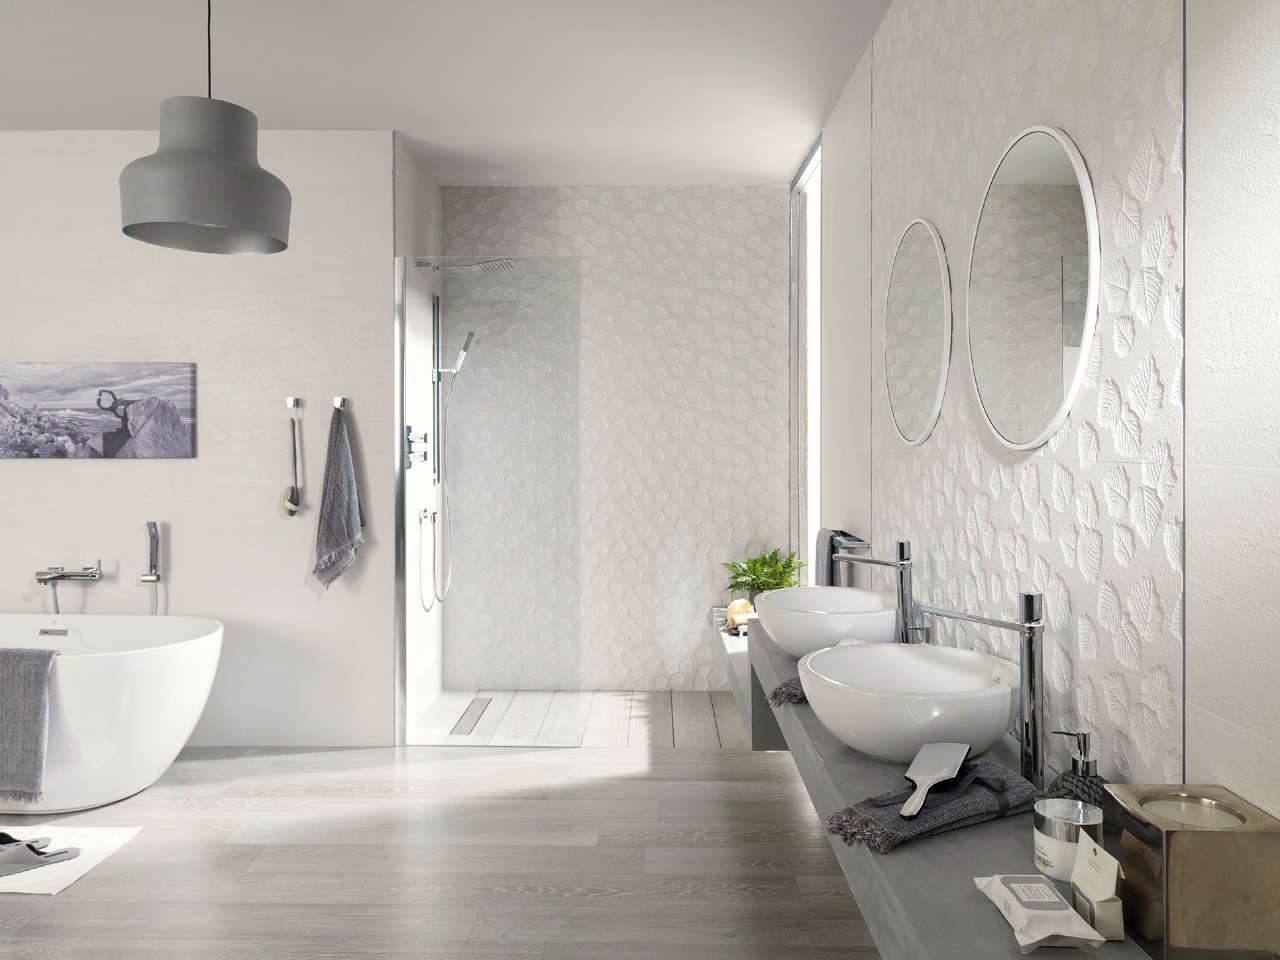 Porcelanosa manila blanco 31 6x90 cm wall tiles love the - Porcelanosa carrelage salle de bain ...